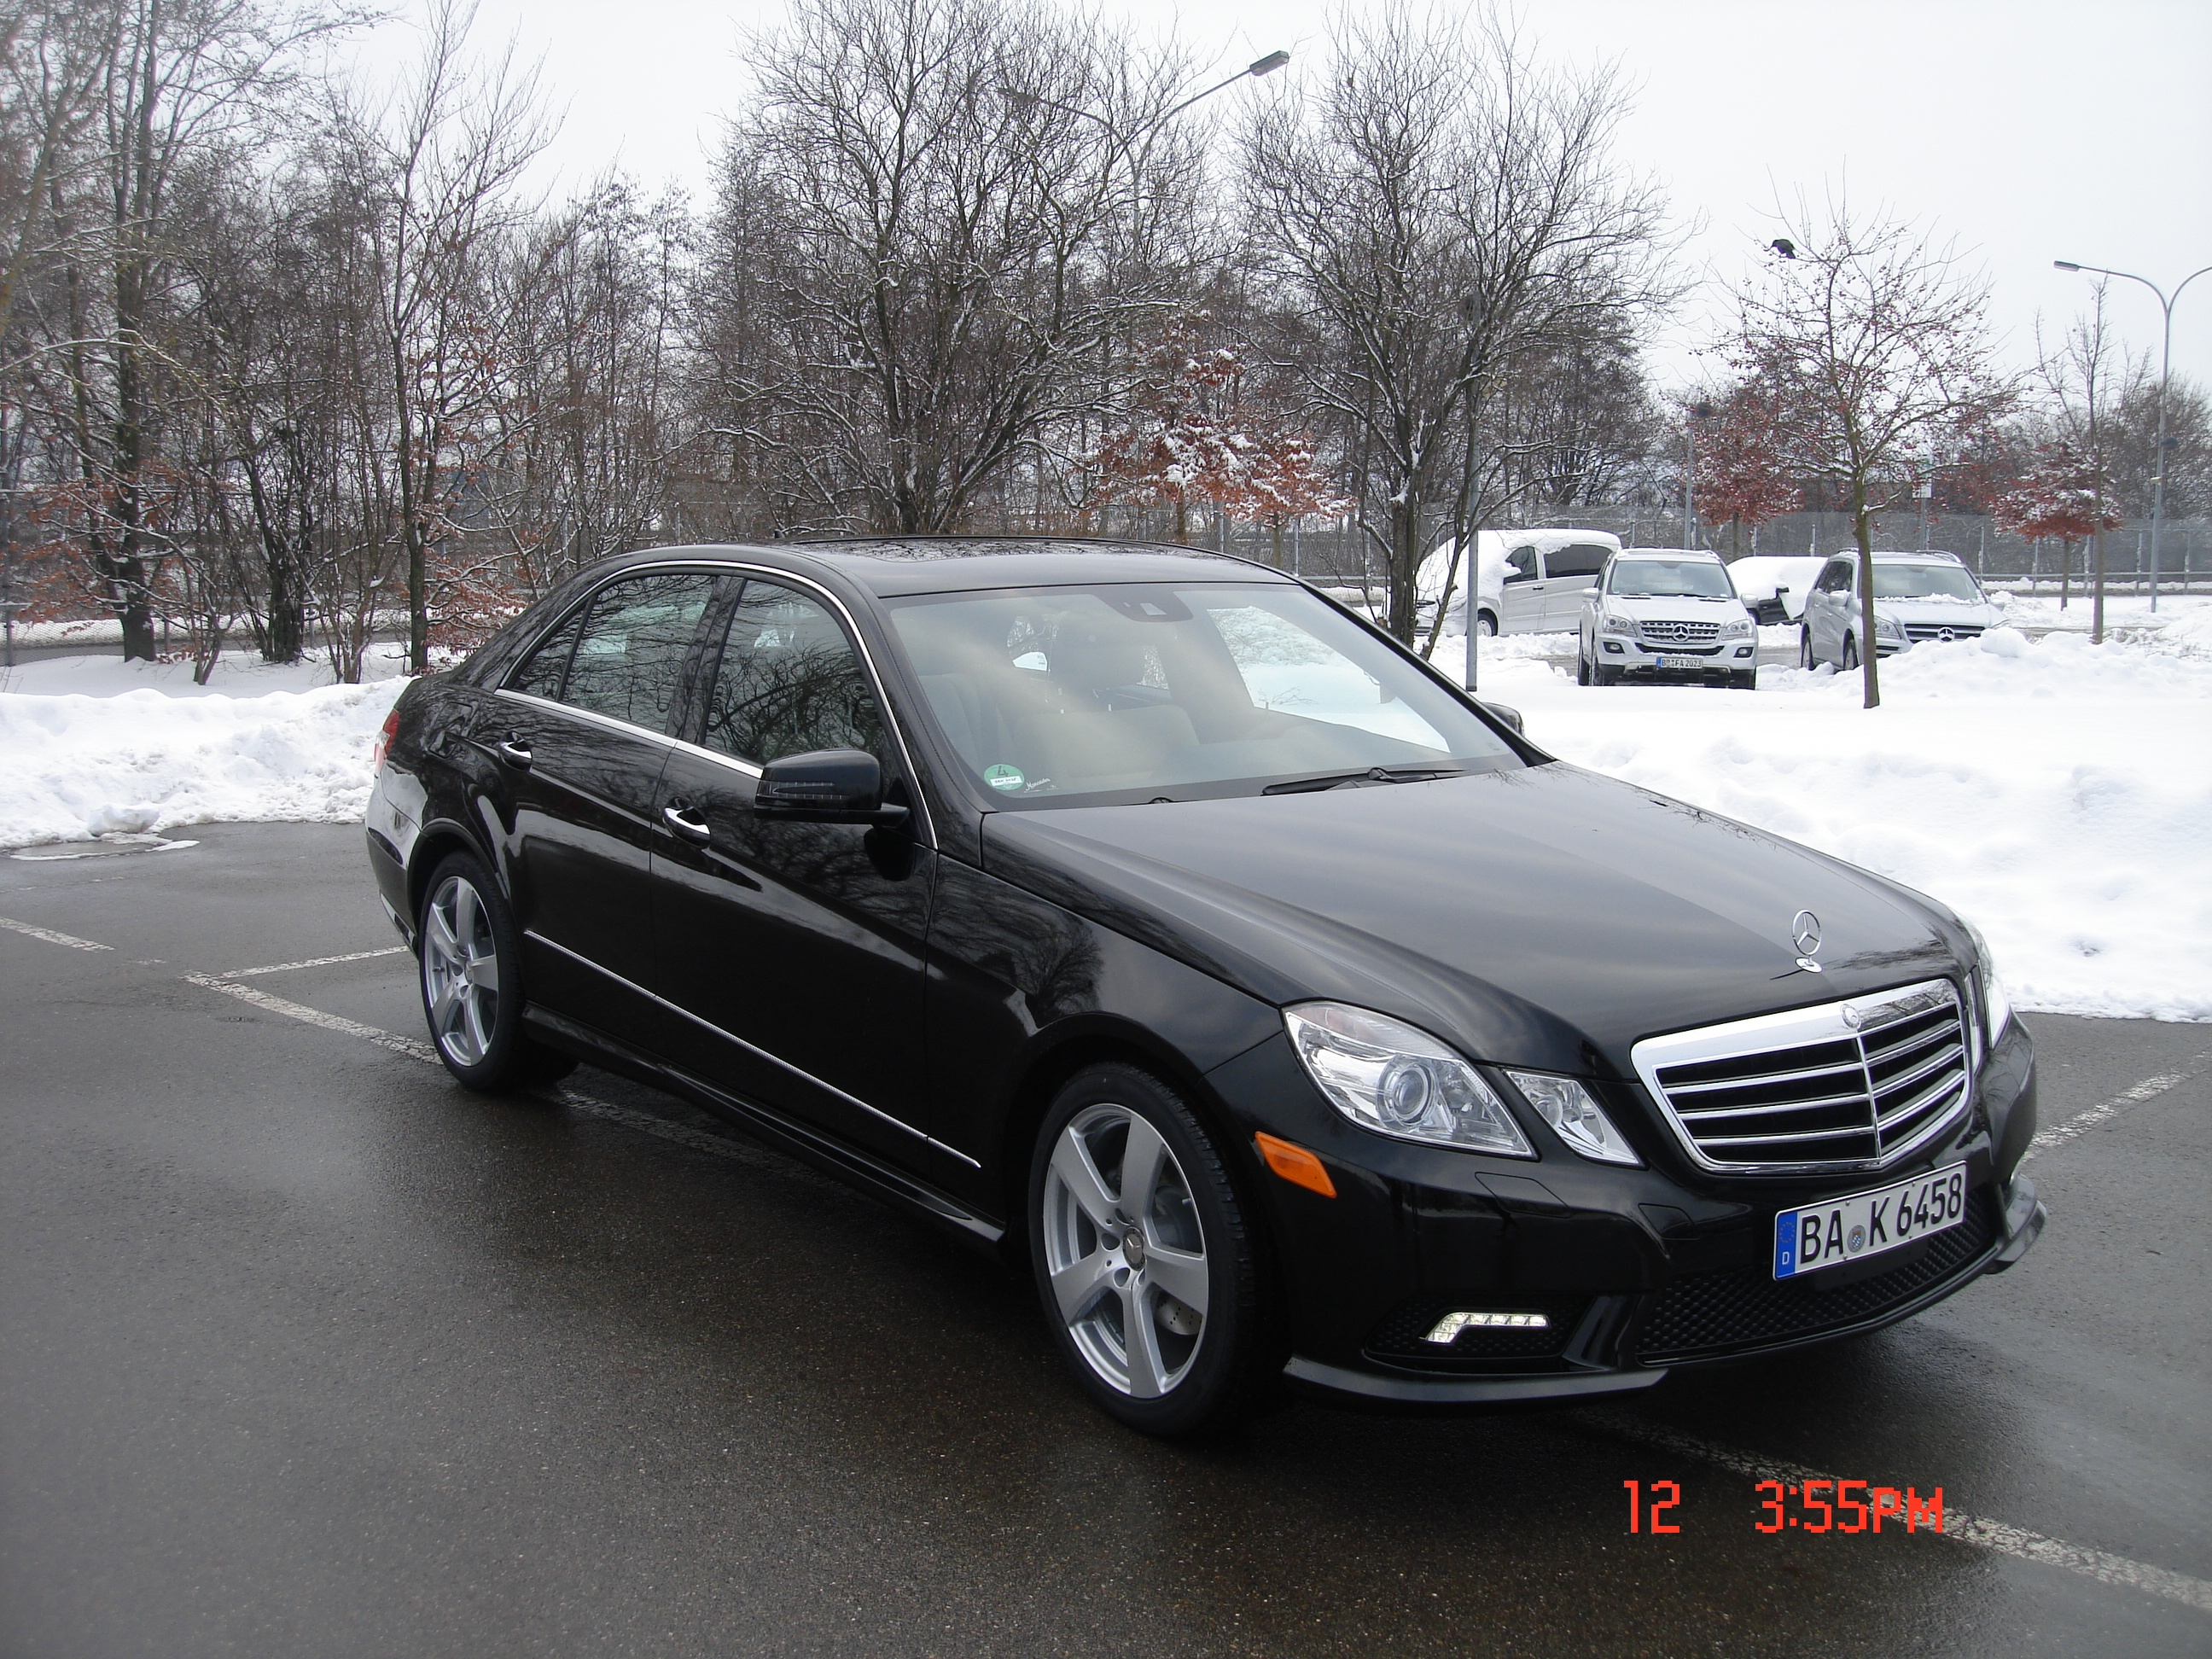 mccleary84 39 s 2010 mercedes benz e class in bamberg ae. Black Bedroom Furniture Sets. Home Design Ideas